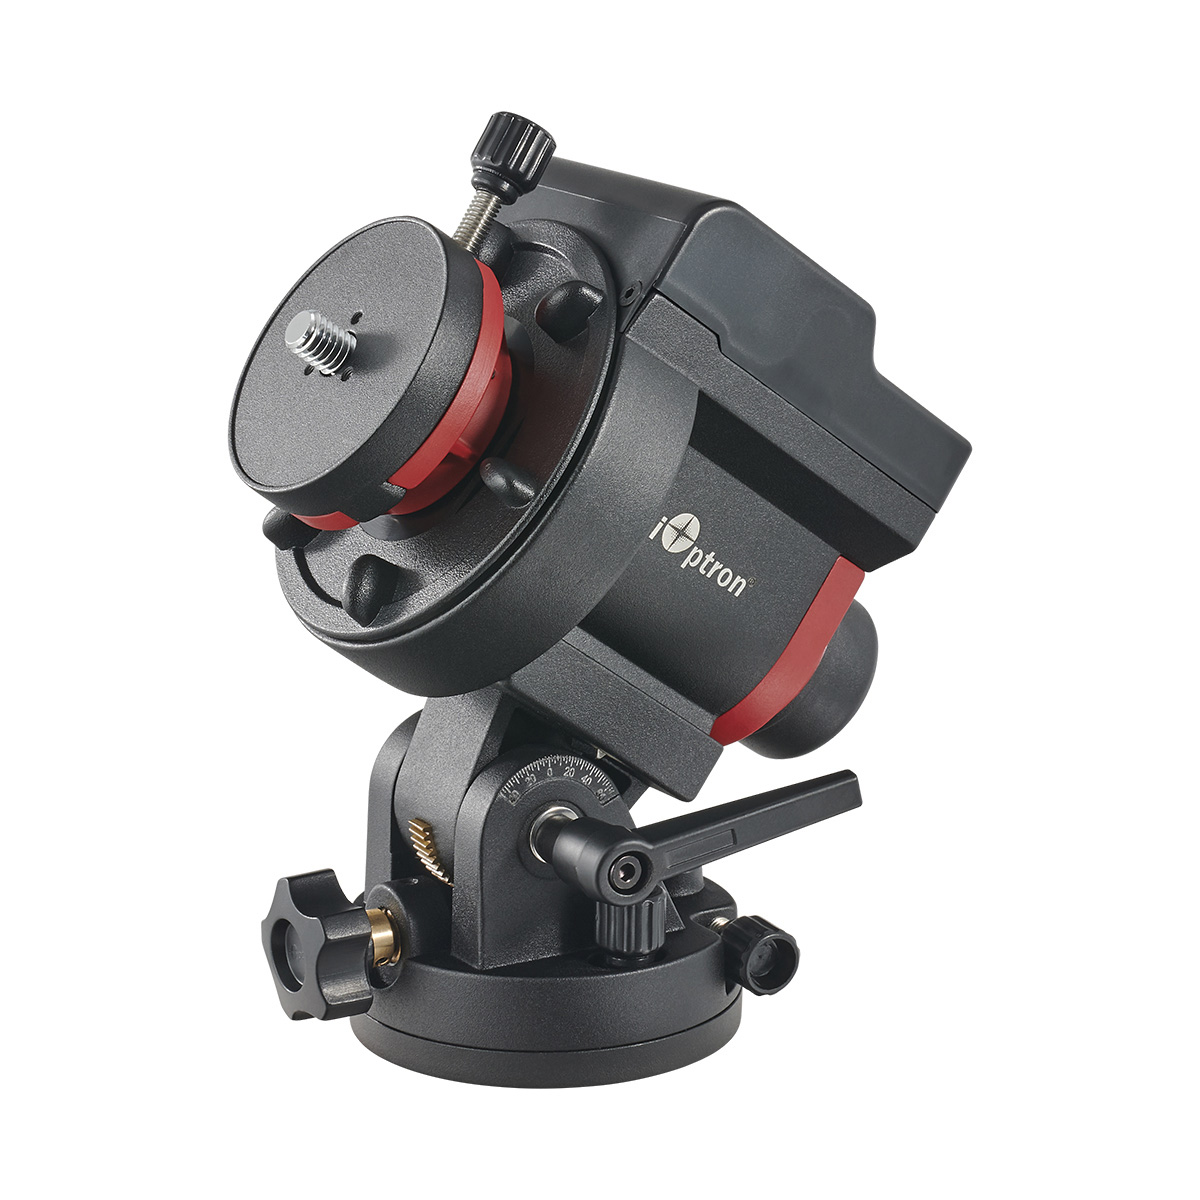 iOptron SkyGuider Pro Camera Mount Full Package